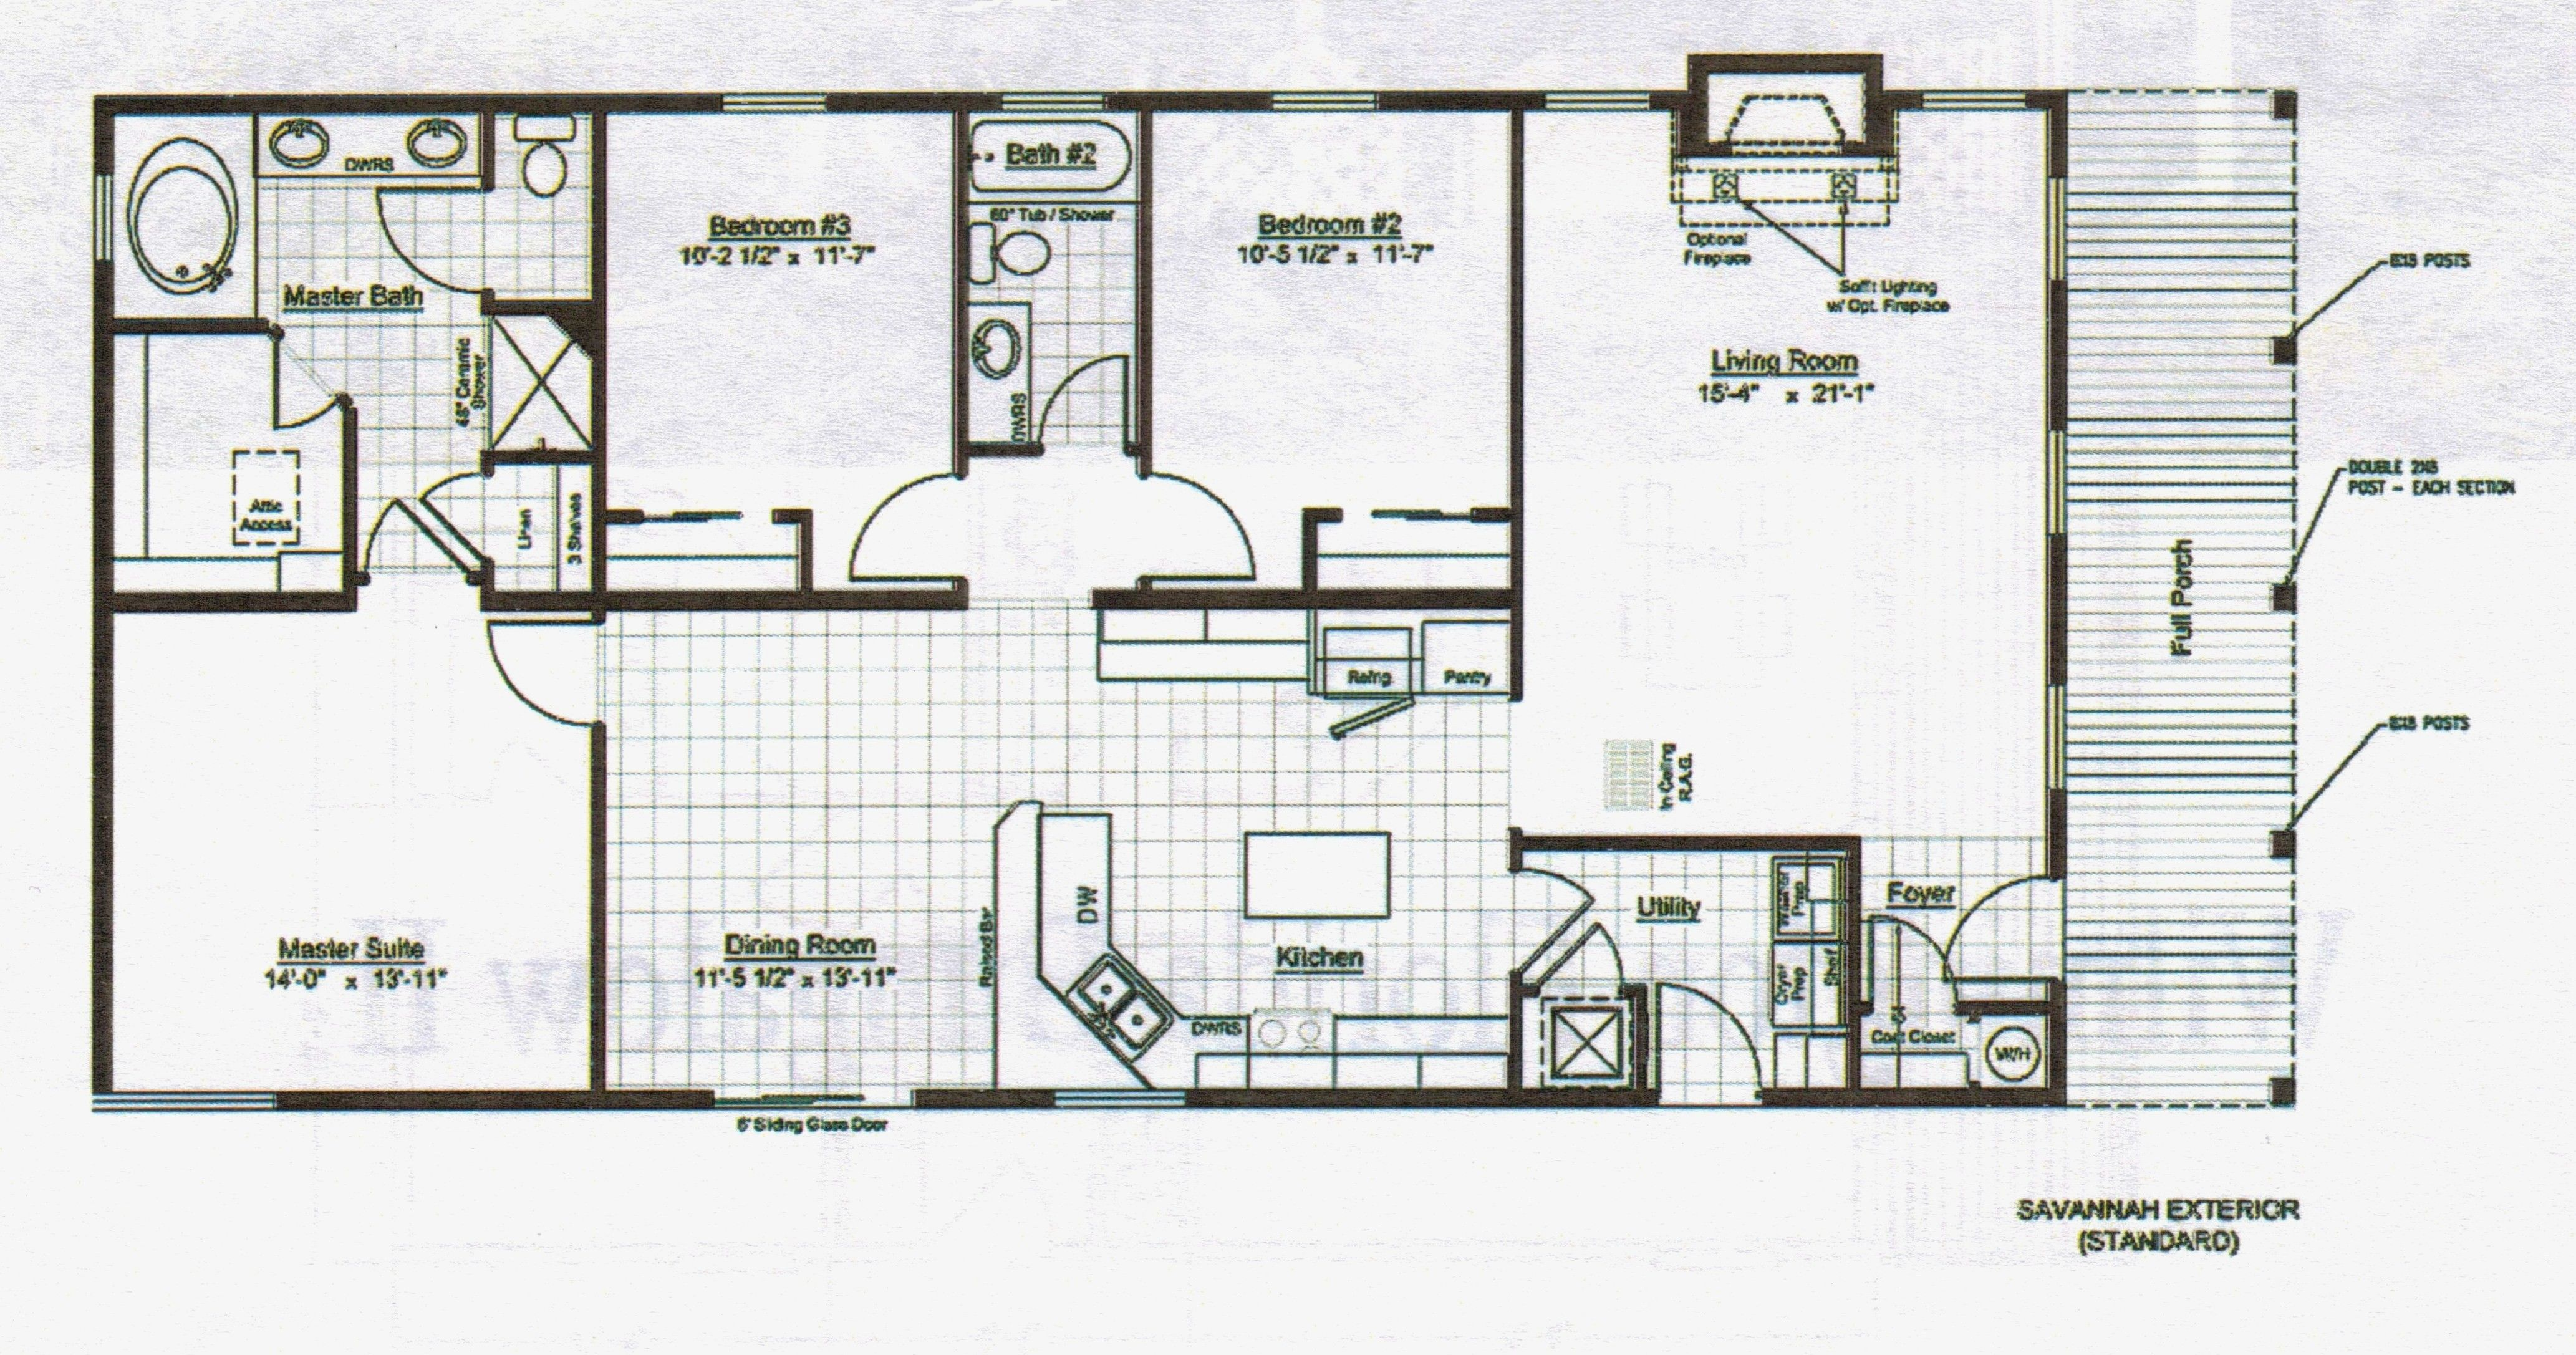 Simple House Layout Lovely House Site Plan Fresh Simple Floor Plan Luxury Home Plans 0d House Floor Plans Floor Plan Design Simple Floor Plans